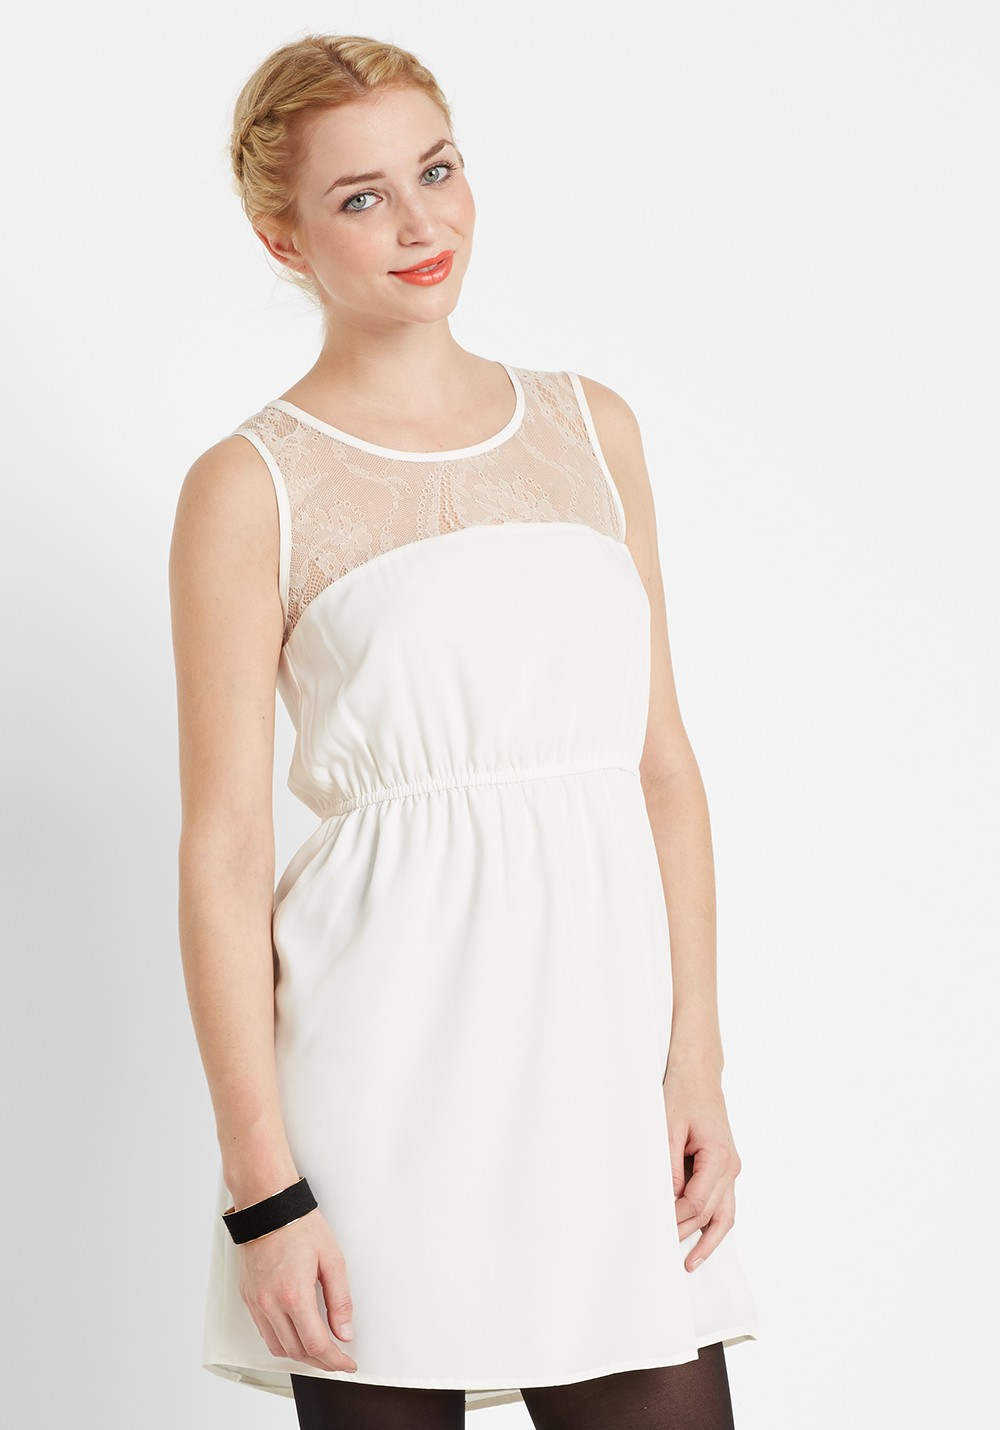 RUT & CIRCLE Price Aline Lace Dress Rut & Circle | frontlineshop.com